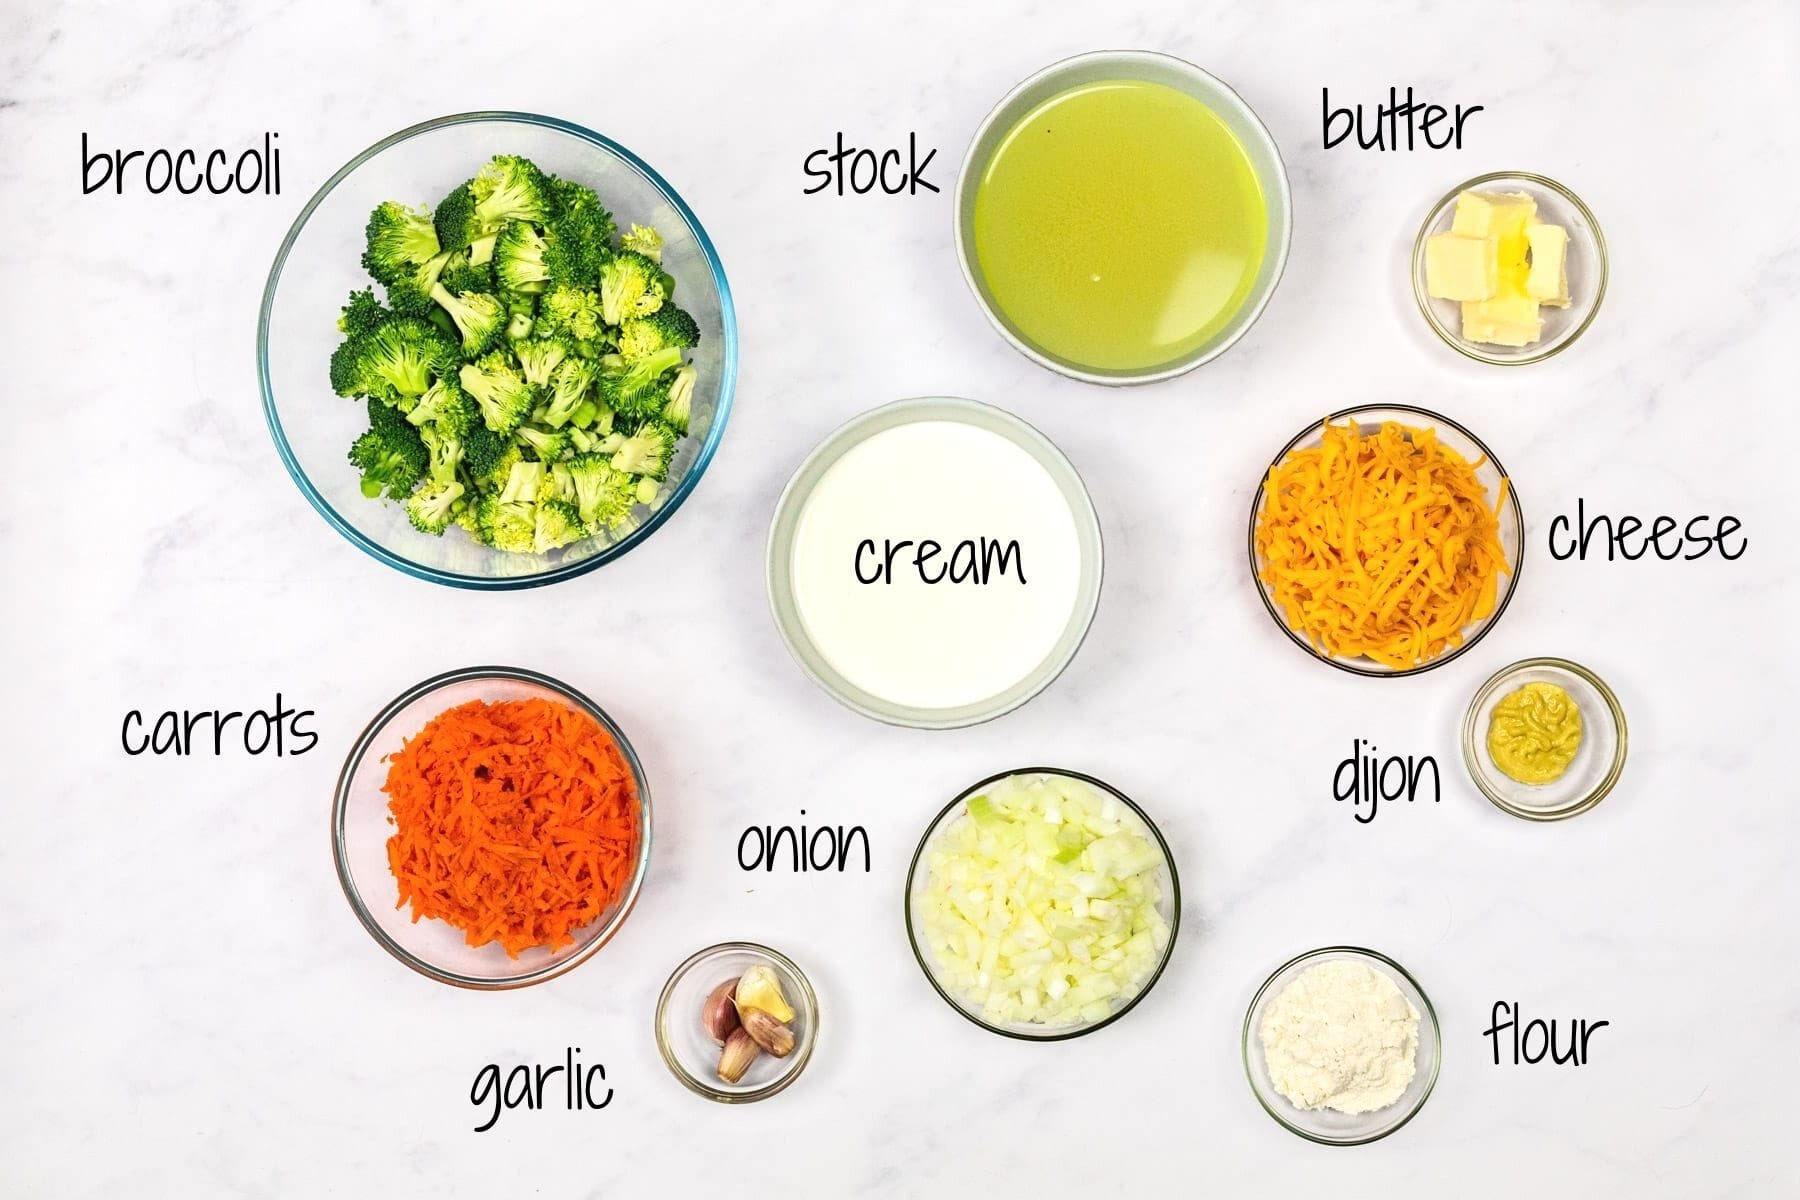 Ingredients for broccoli cheddar soup with text labels.